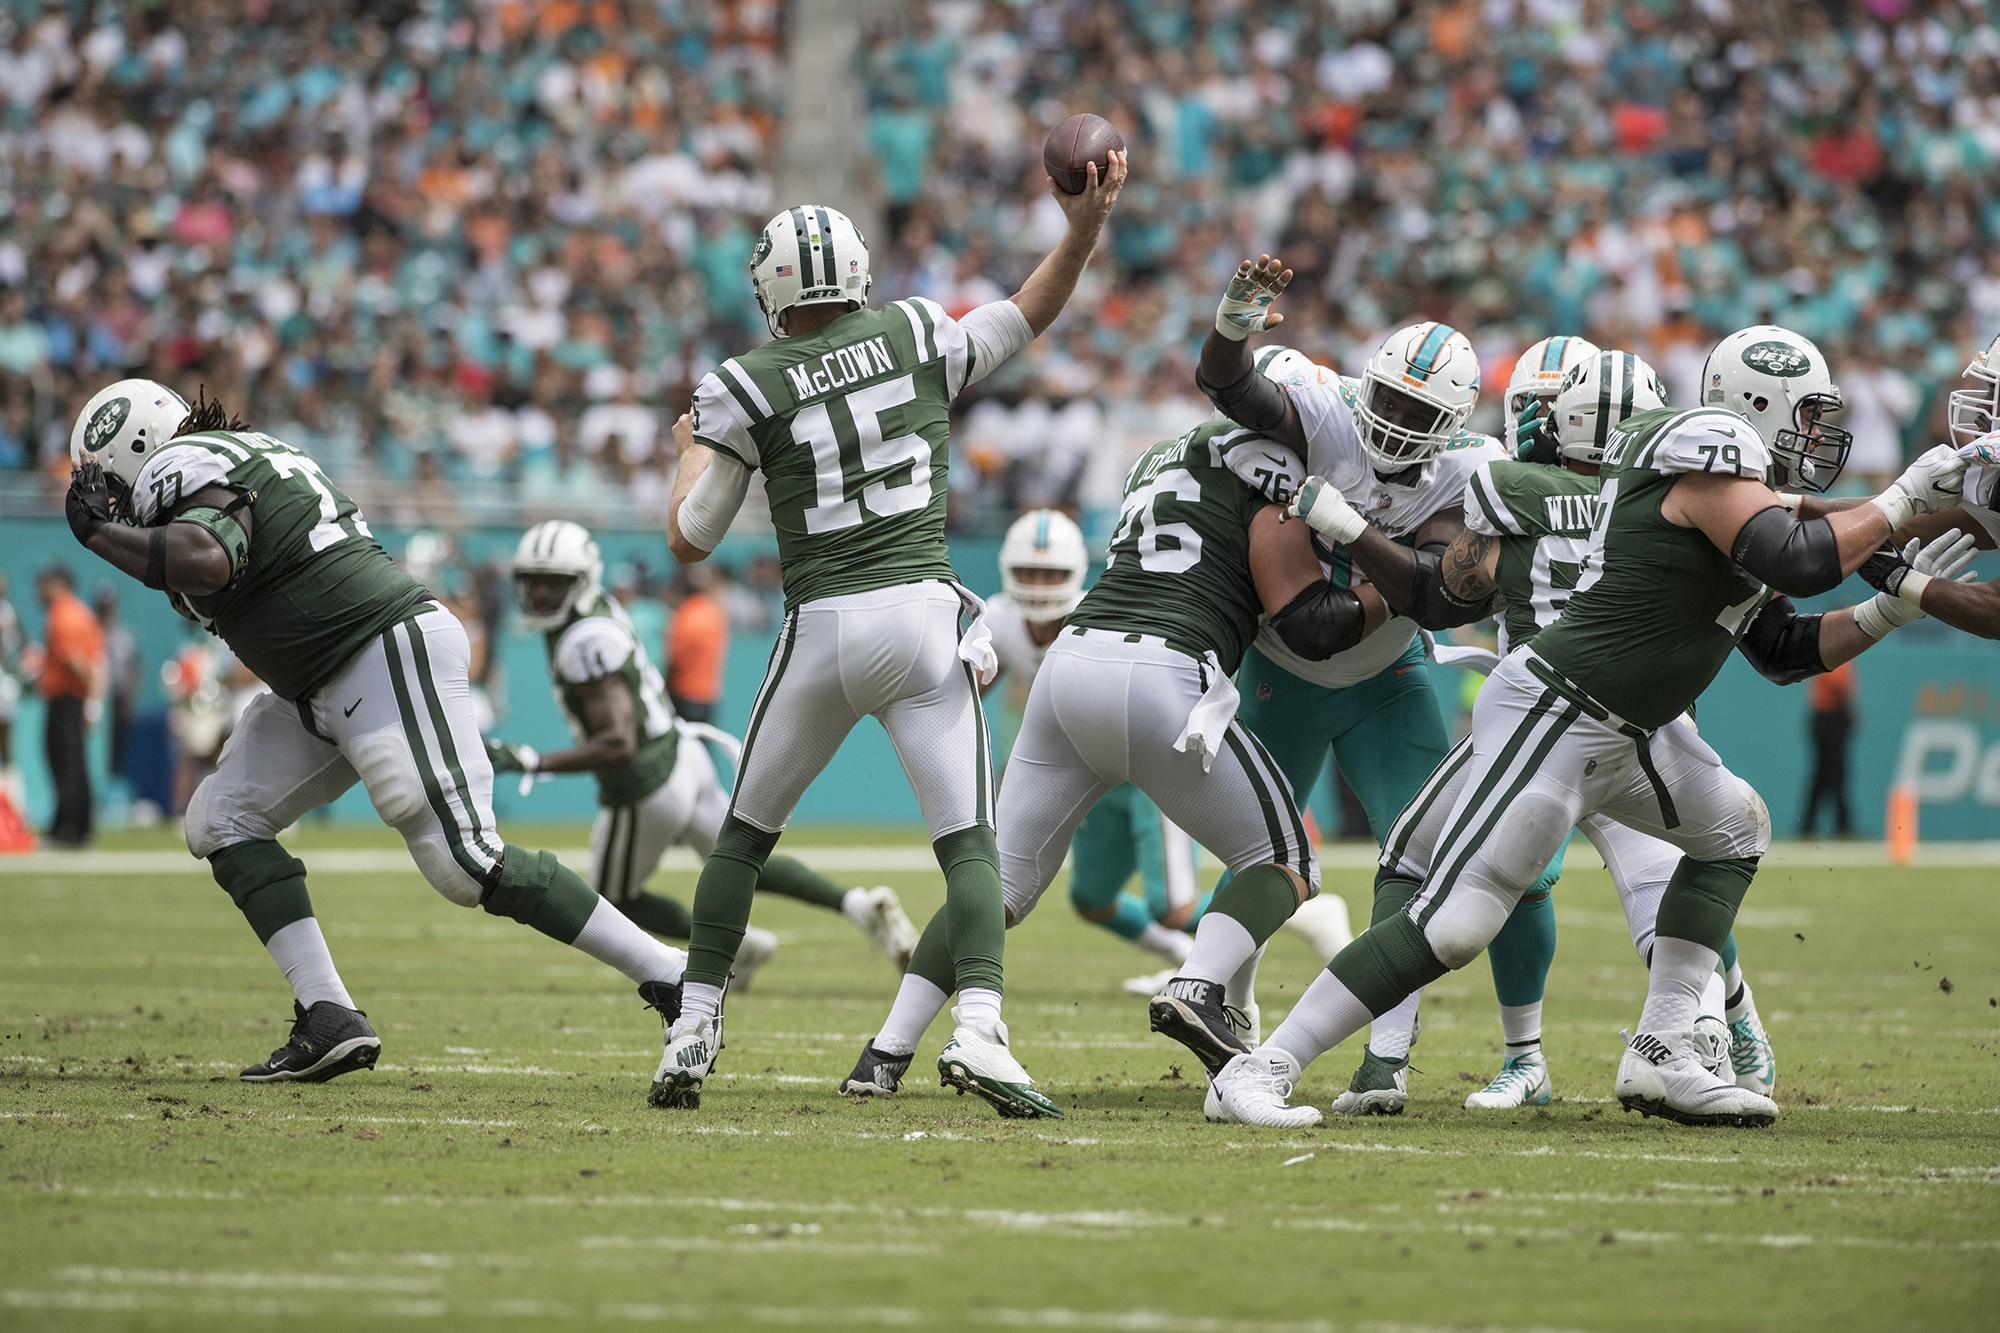 New York Jets quarterback Josh McCown (15) releases a pass as the Miami Dolphins defensive end William Hayes (95) pressures during 1st half play of an NFL football game on Sunday, Oct. 22, 2017, in Miami Gardens, Fla. The Miami Dolphins went on to defeat the New York Jets 31-28. (Donald Edgar/El Latino Digital)